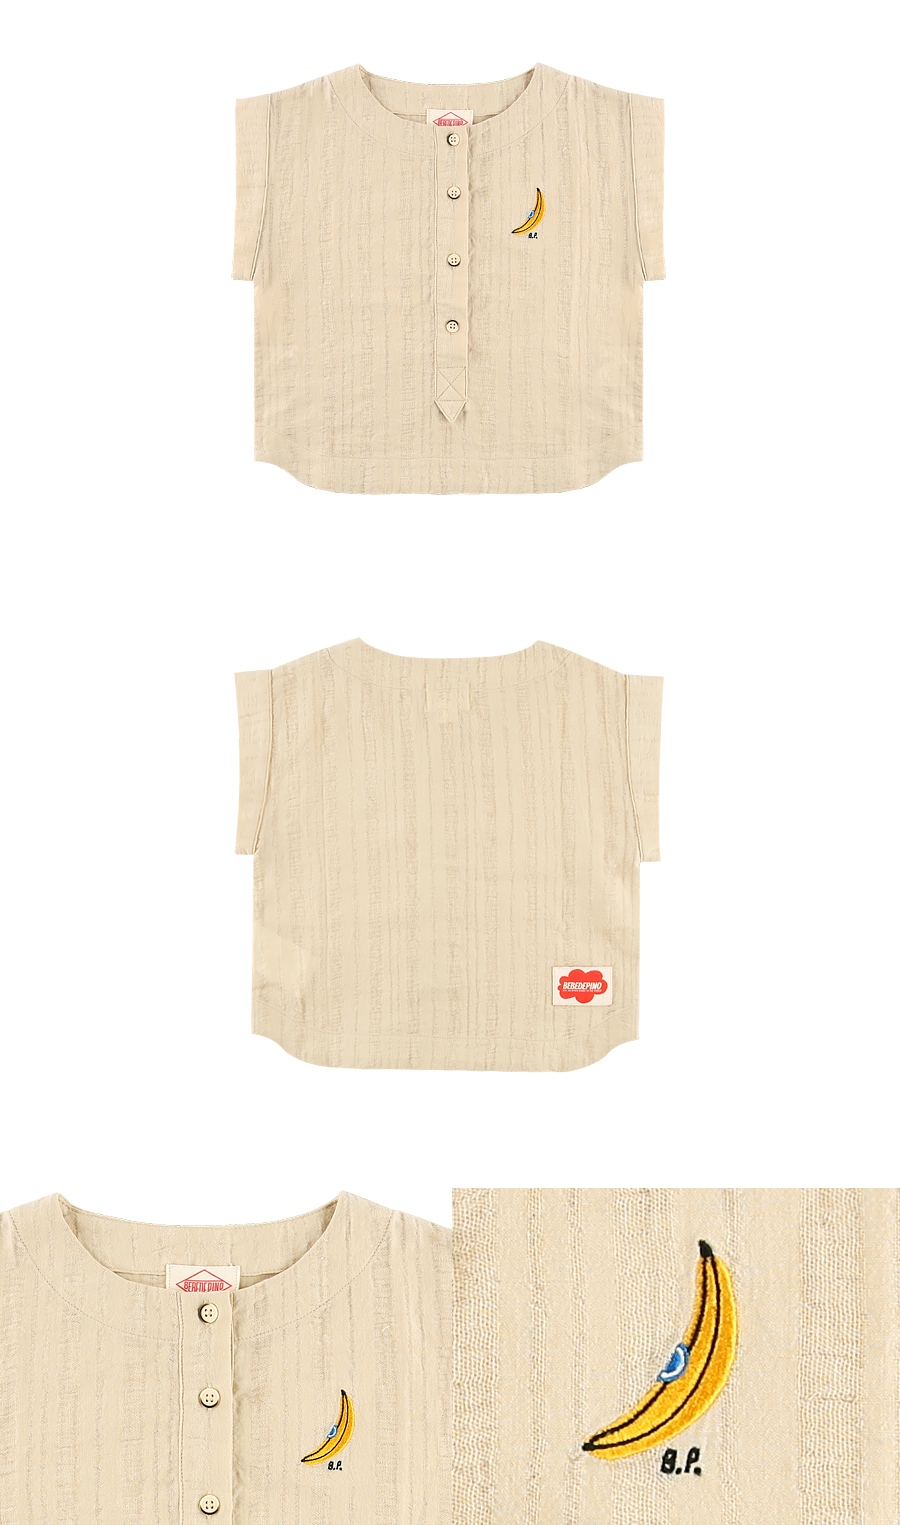 Banana french sleeve cotton blouse 상세 이미지